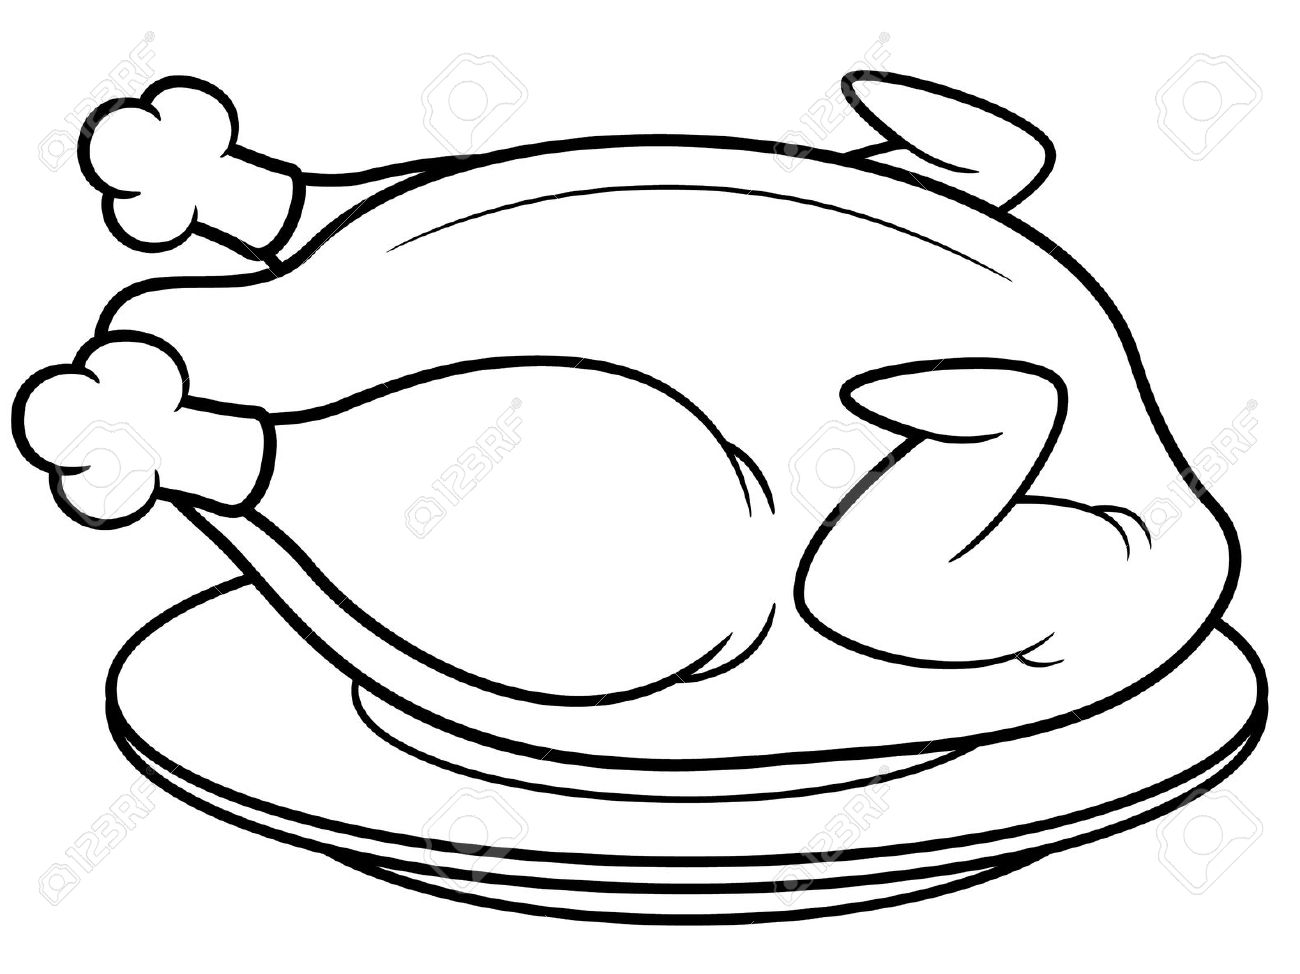 Chicken Wing Drawing At Free For Personal Use Detailed Diagram Of A 736x640 Drawn Wings Line 1300x974 Fried Clipart Black And White